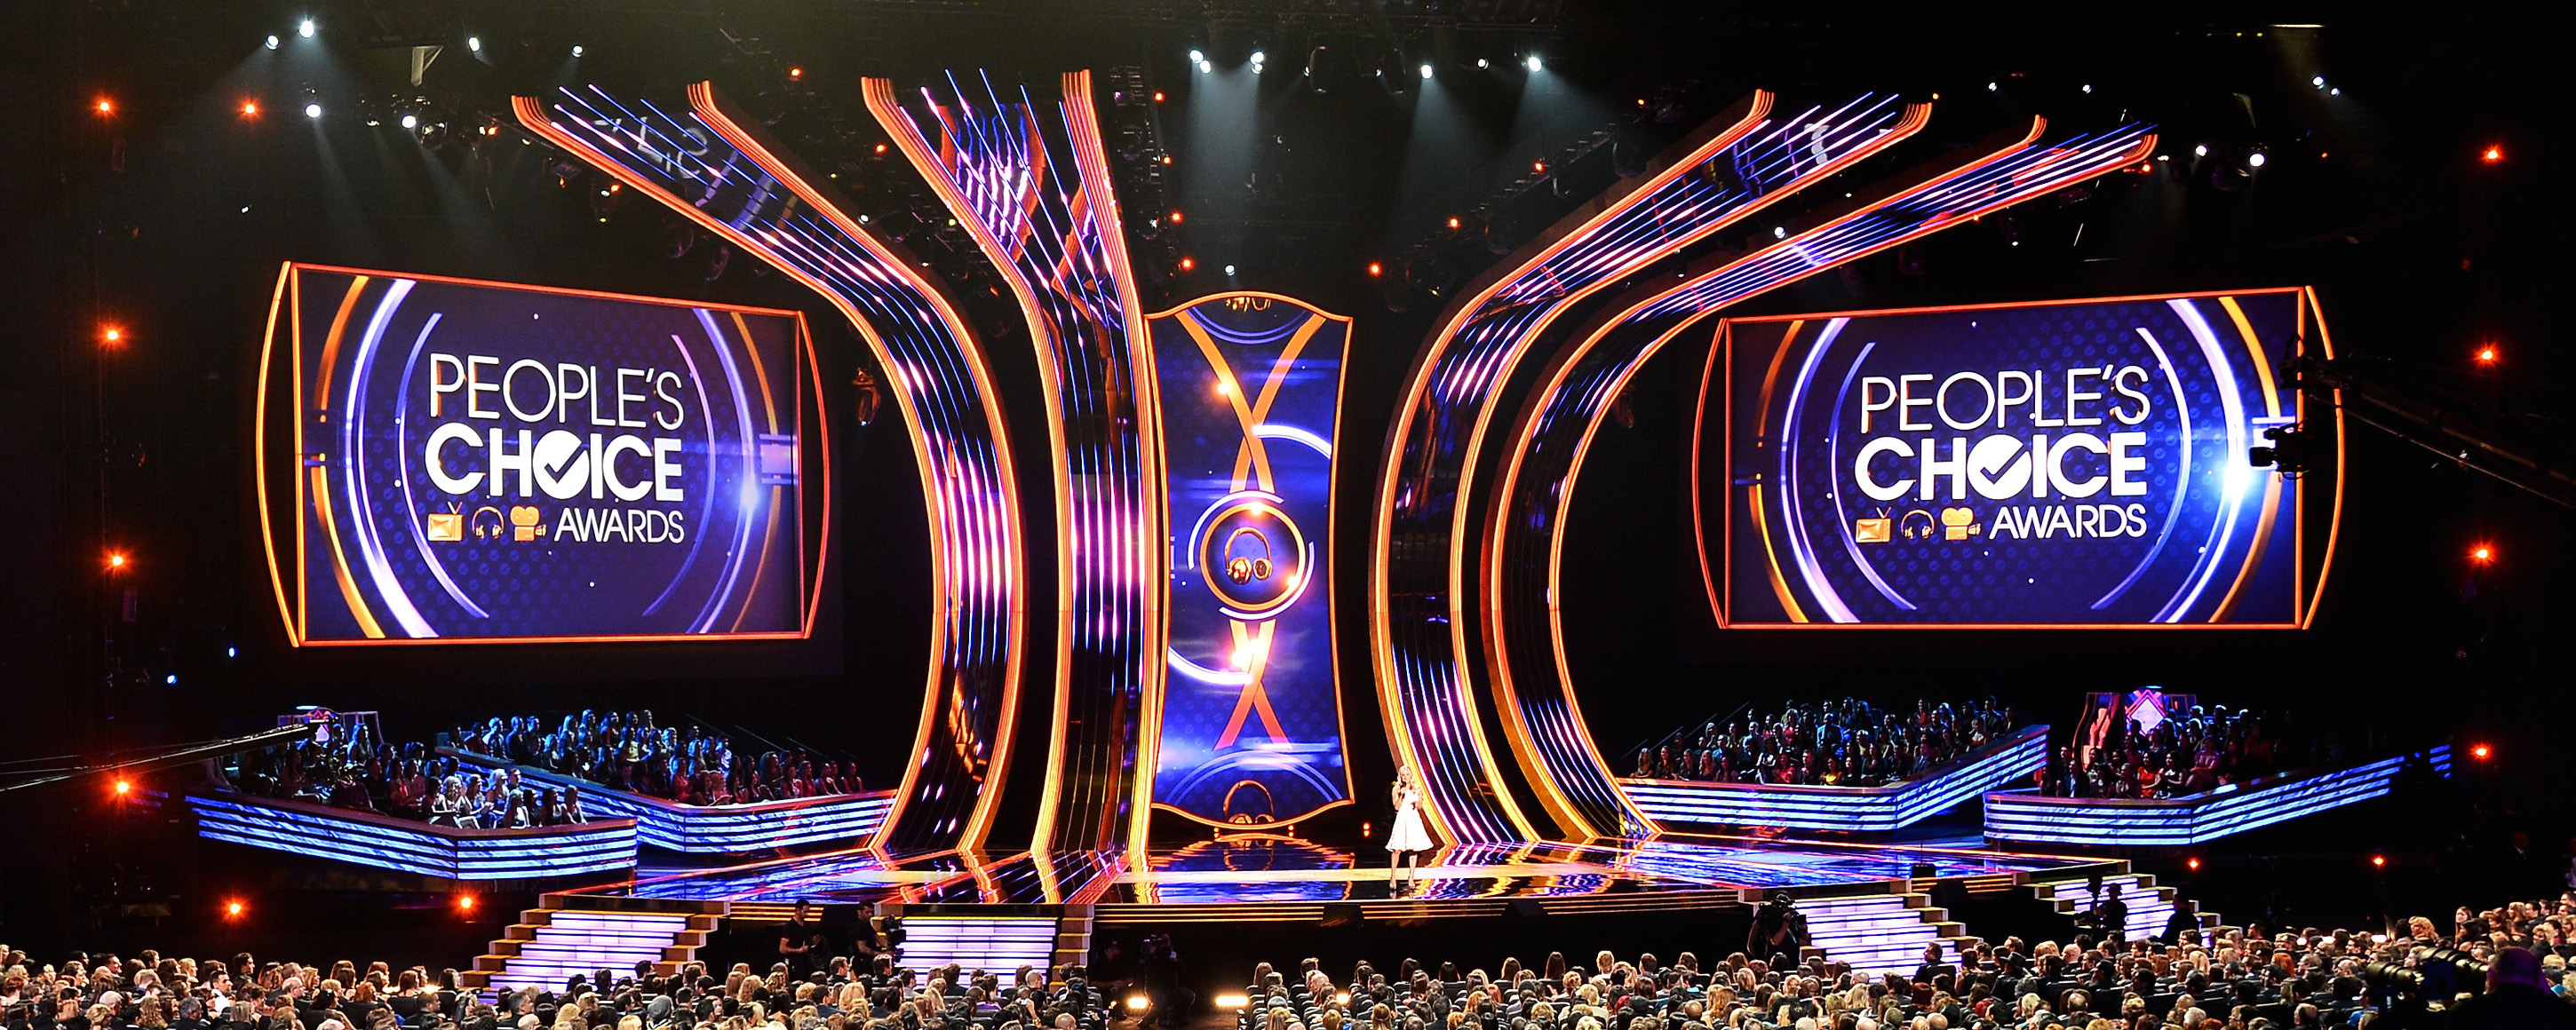 Peoples' Choice Awards stage